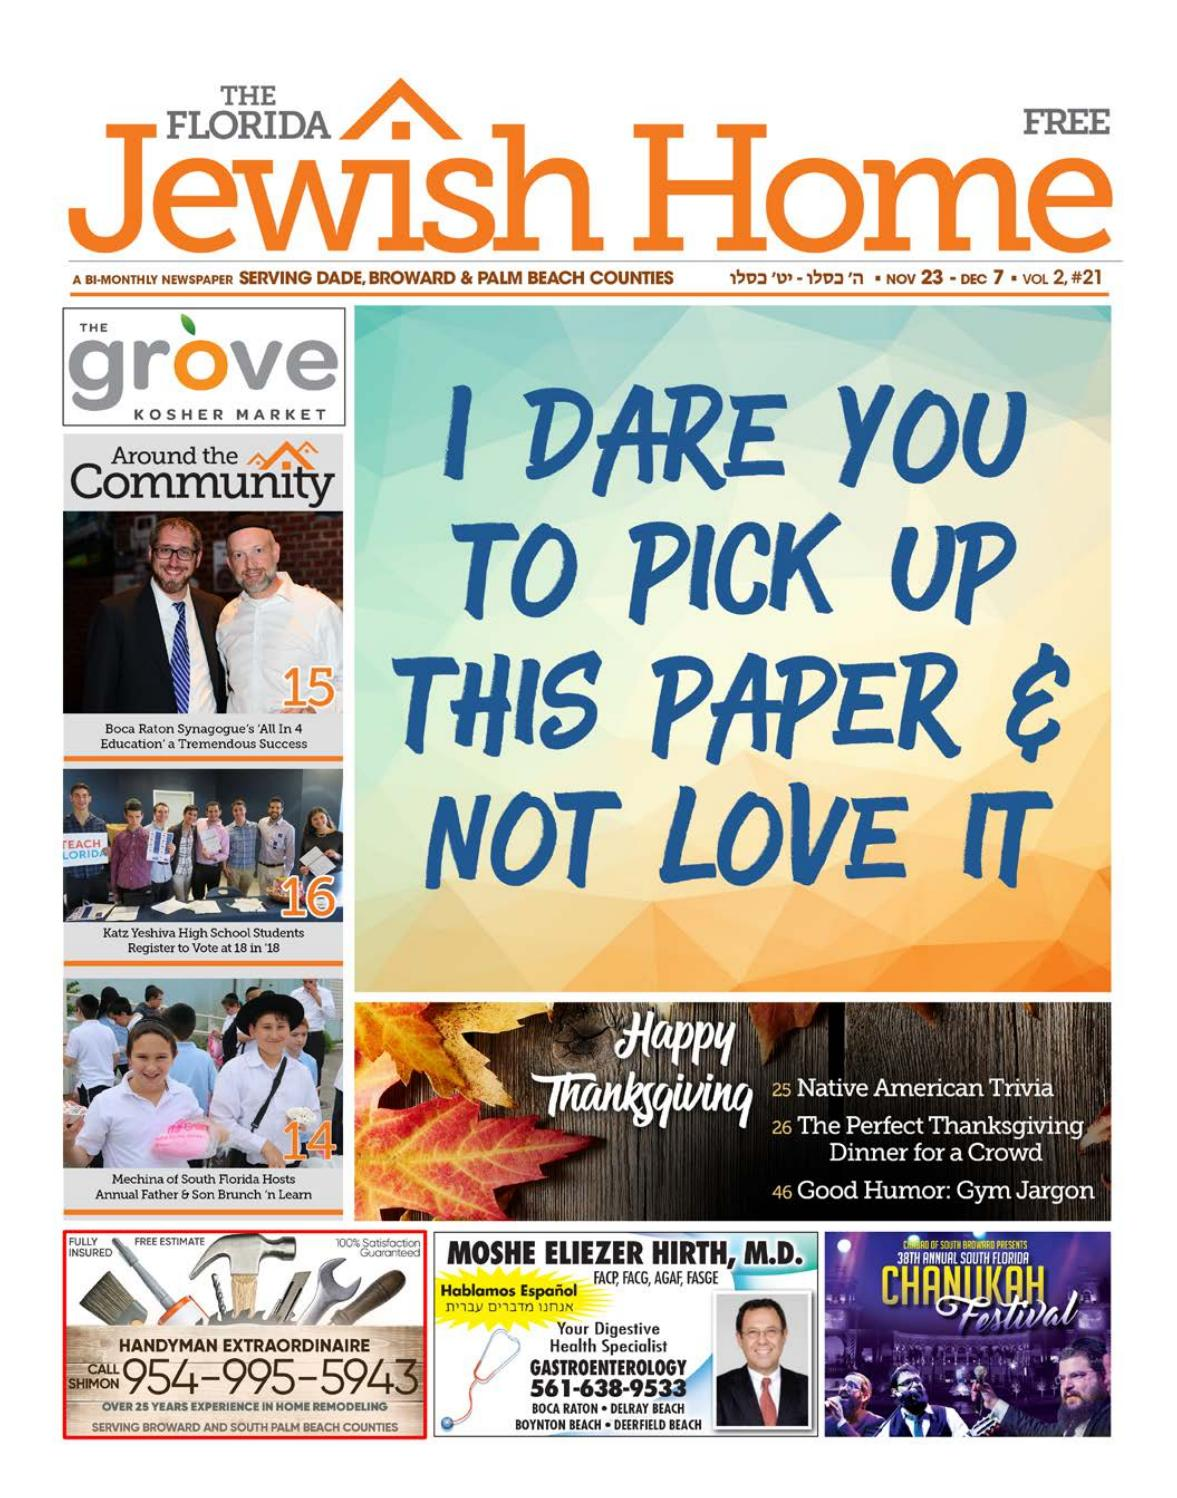 The Florida Jewish Home Newspaper 11 23 17 Thanksgiving Edition By